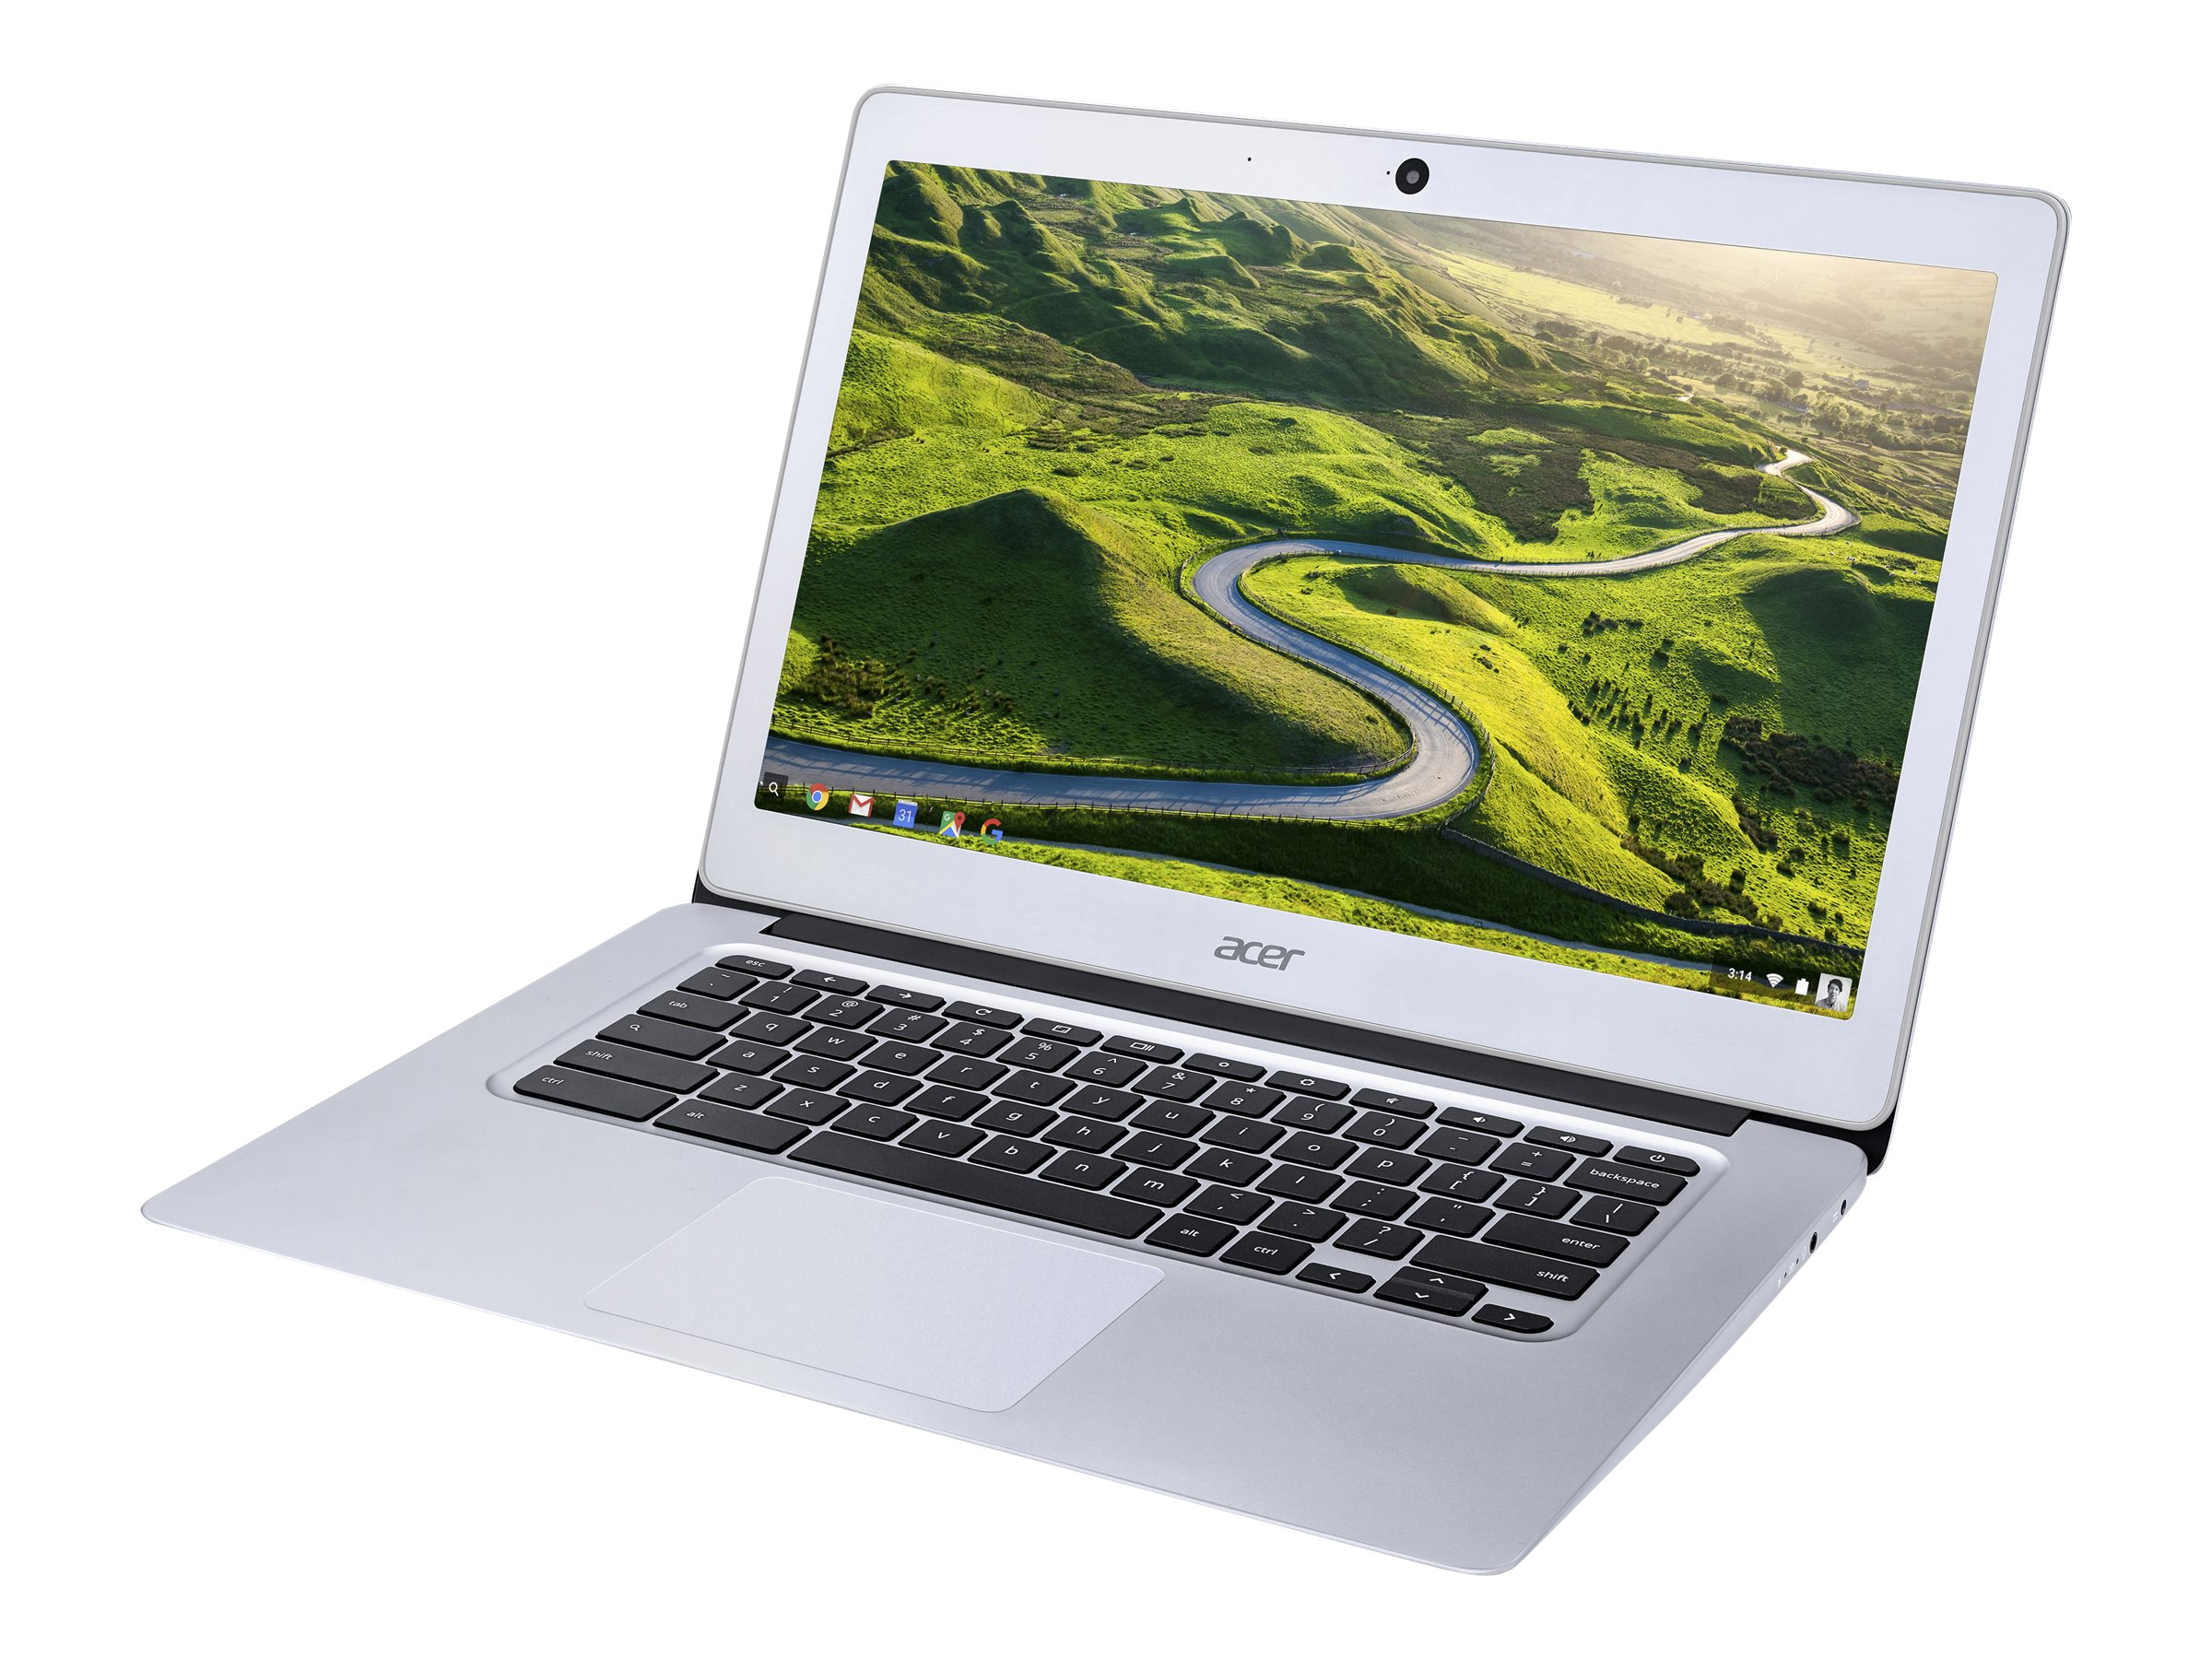 Acer Chromebook 14 CB3-431-C0D0 1.6GHz Celeron 14in display